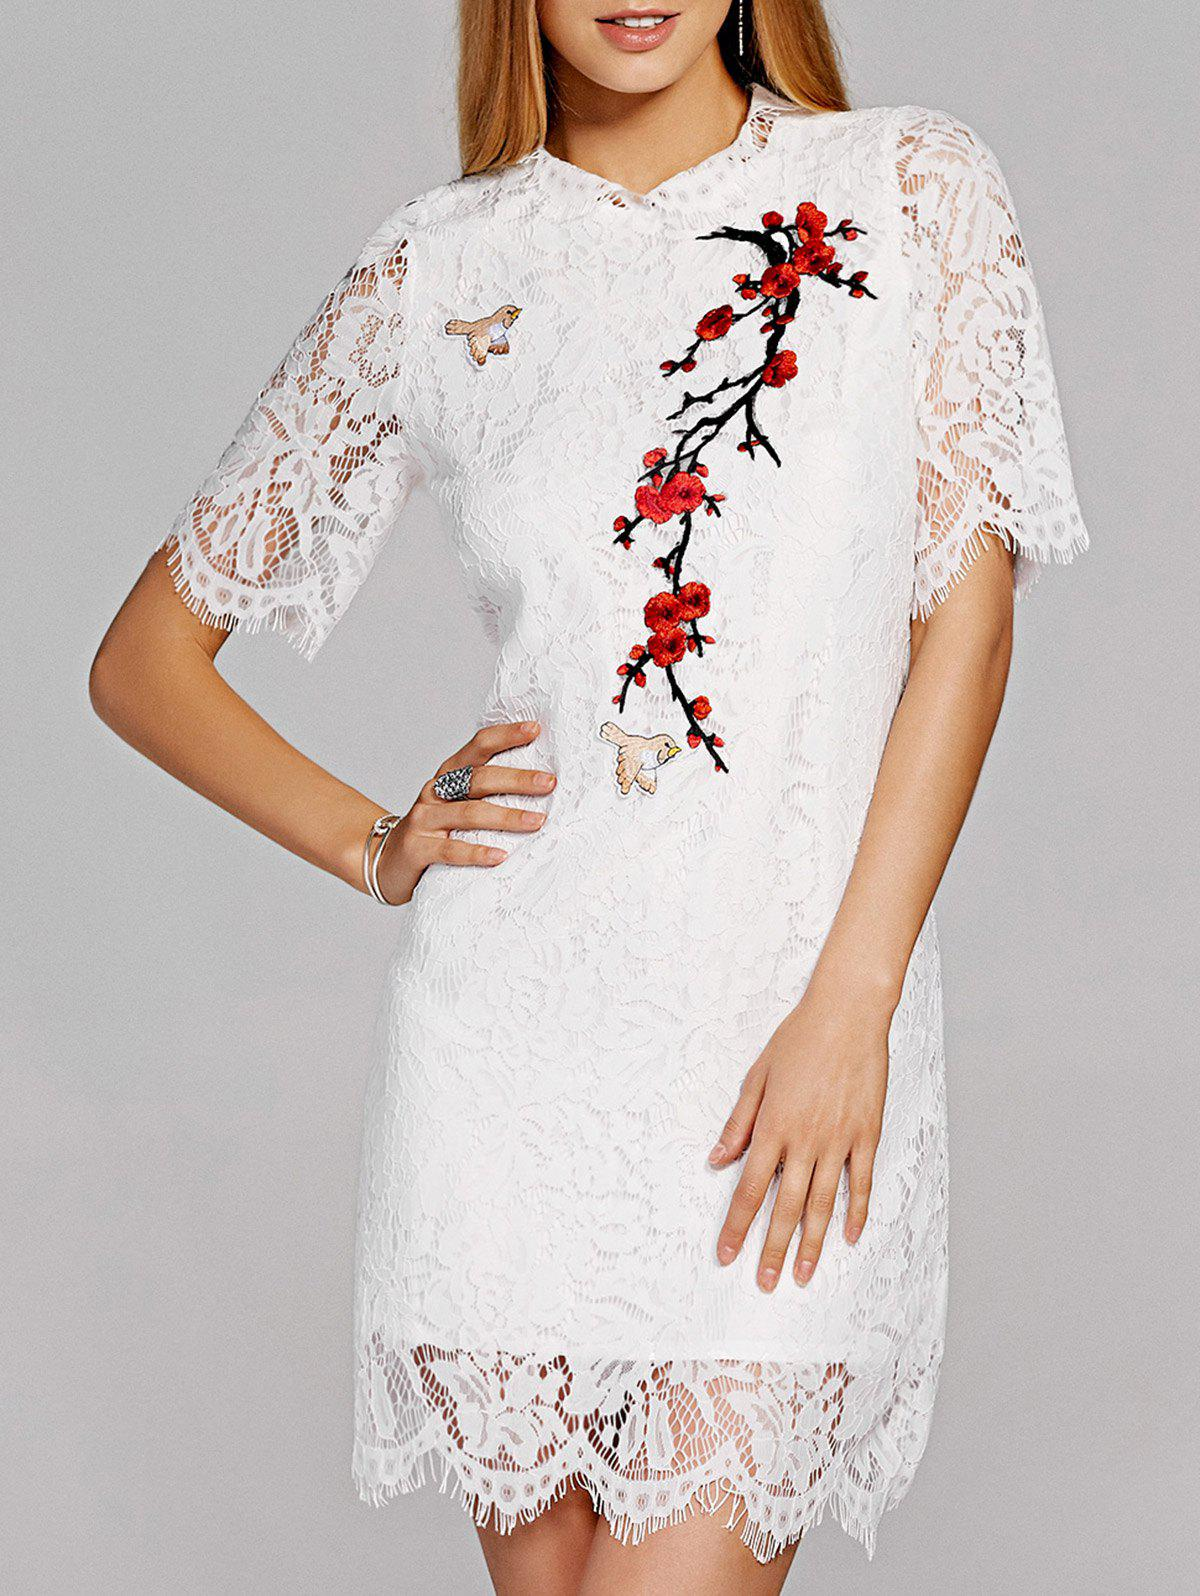 Scalloped Floral Embroidered Lace Crochet Dress - WHITE XL